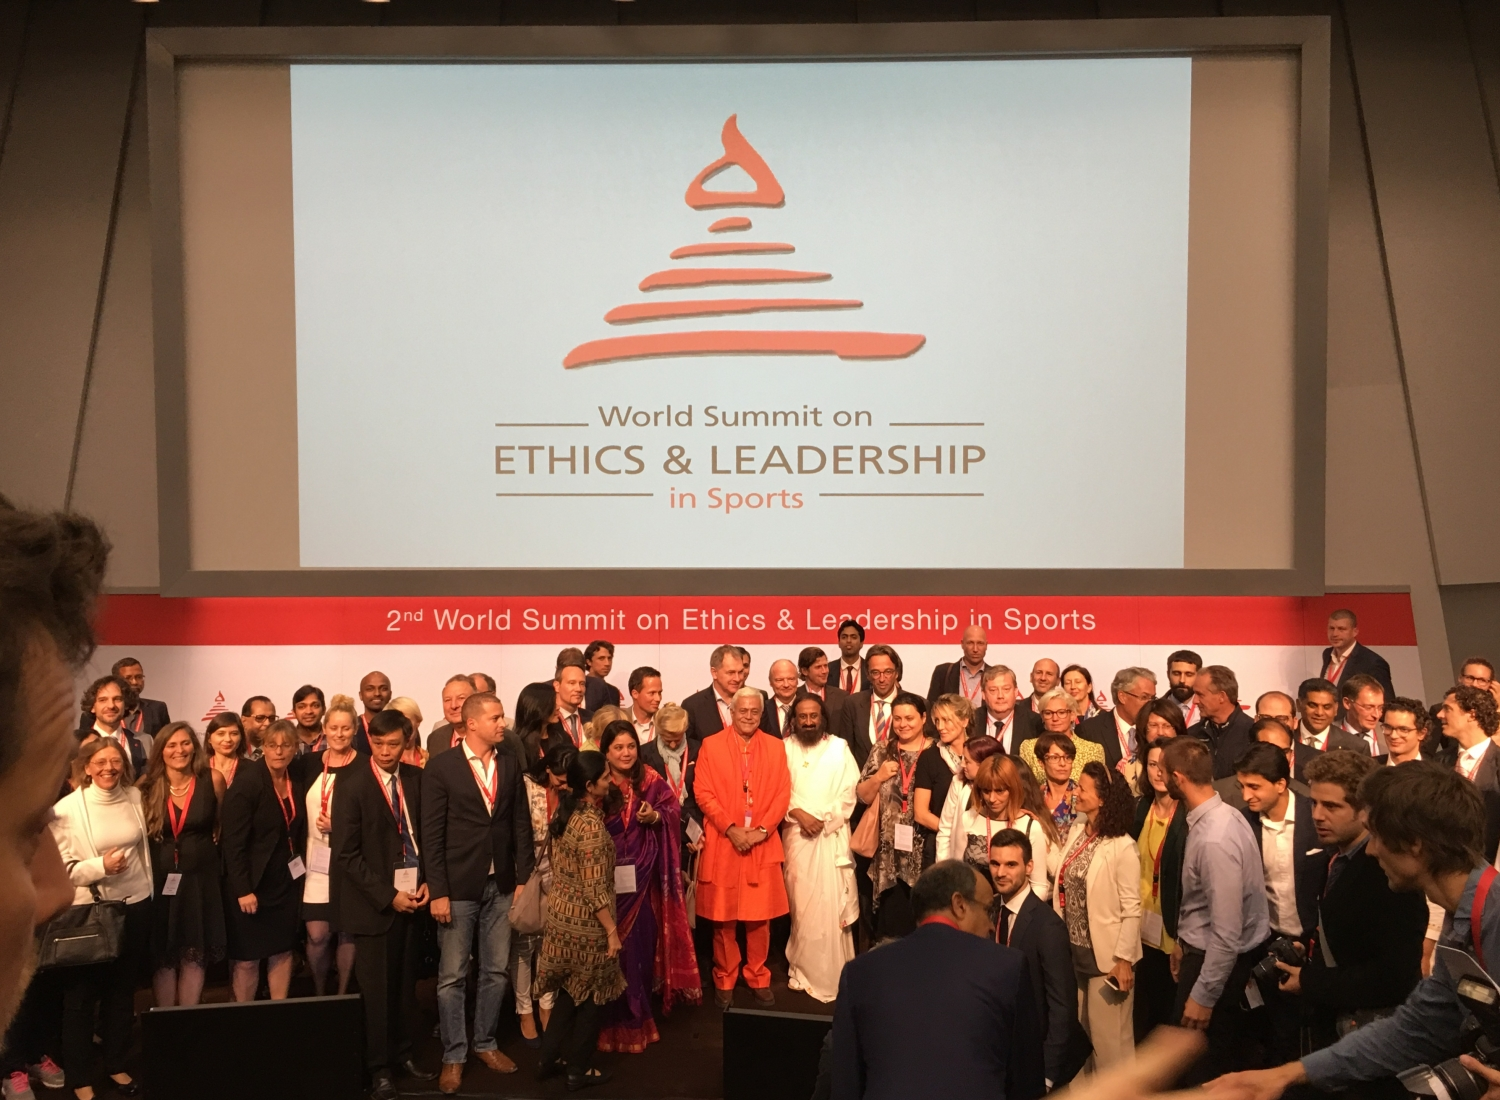 2nd World Summit on Ethics & Leadership in Sports - Zurich, Switzerland - 2016, September